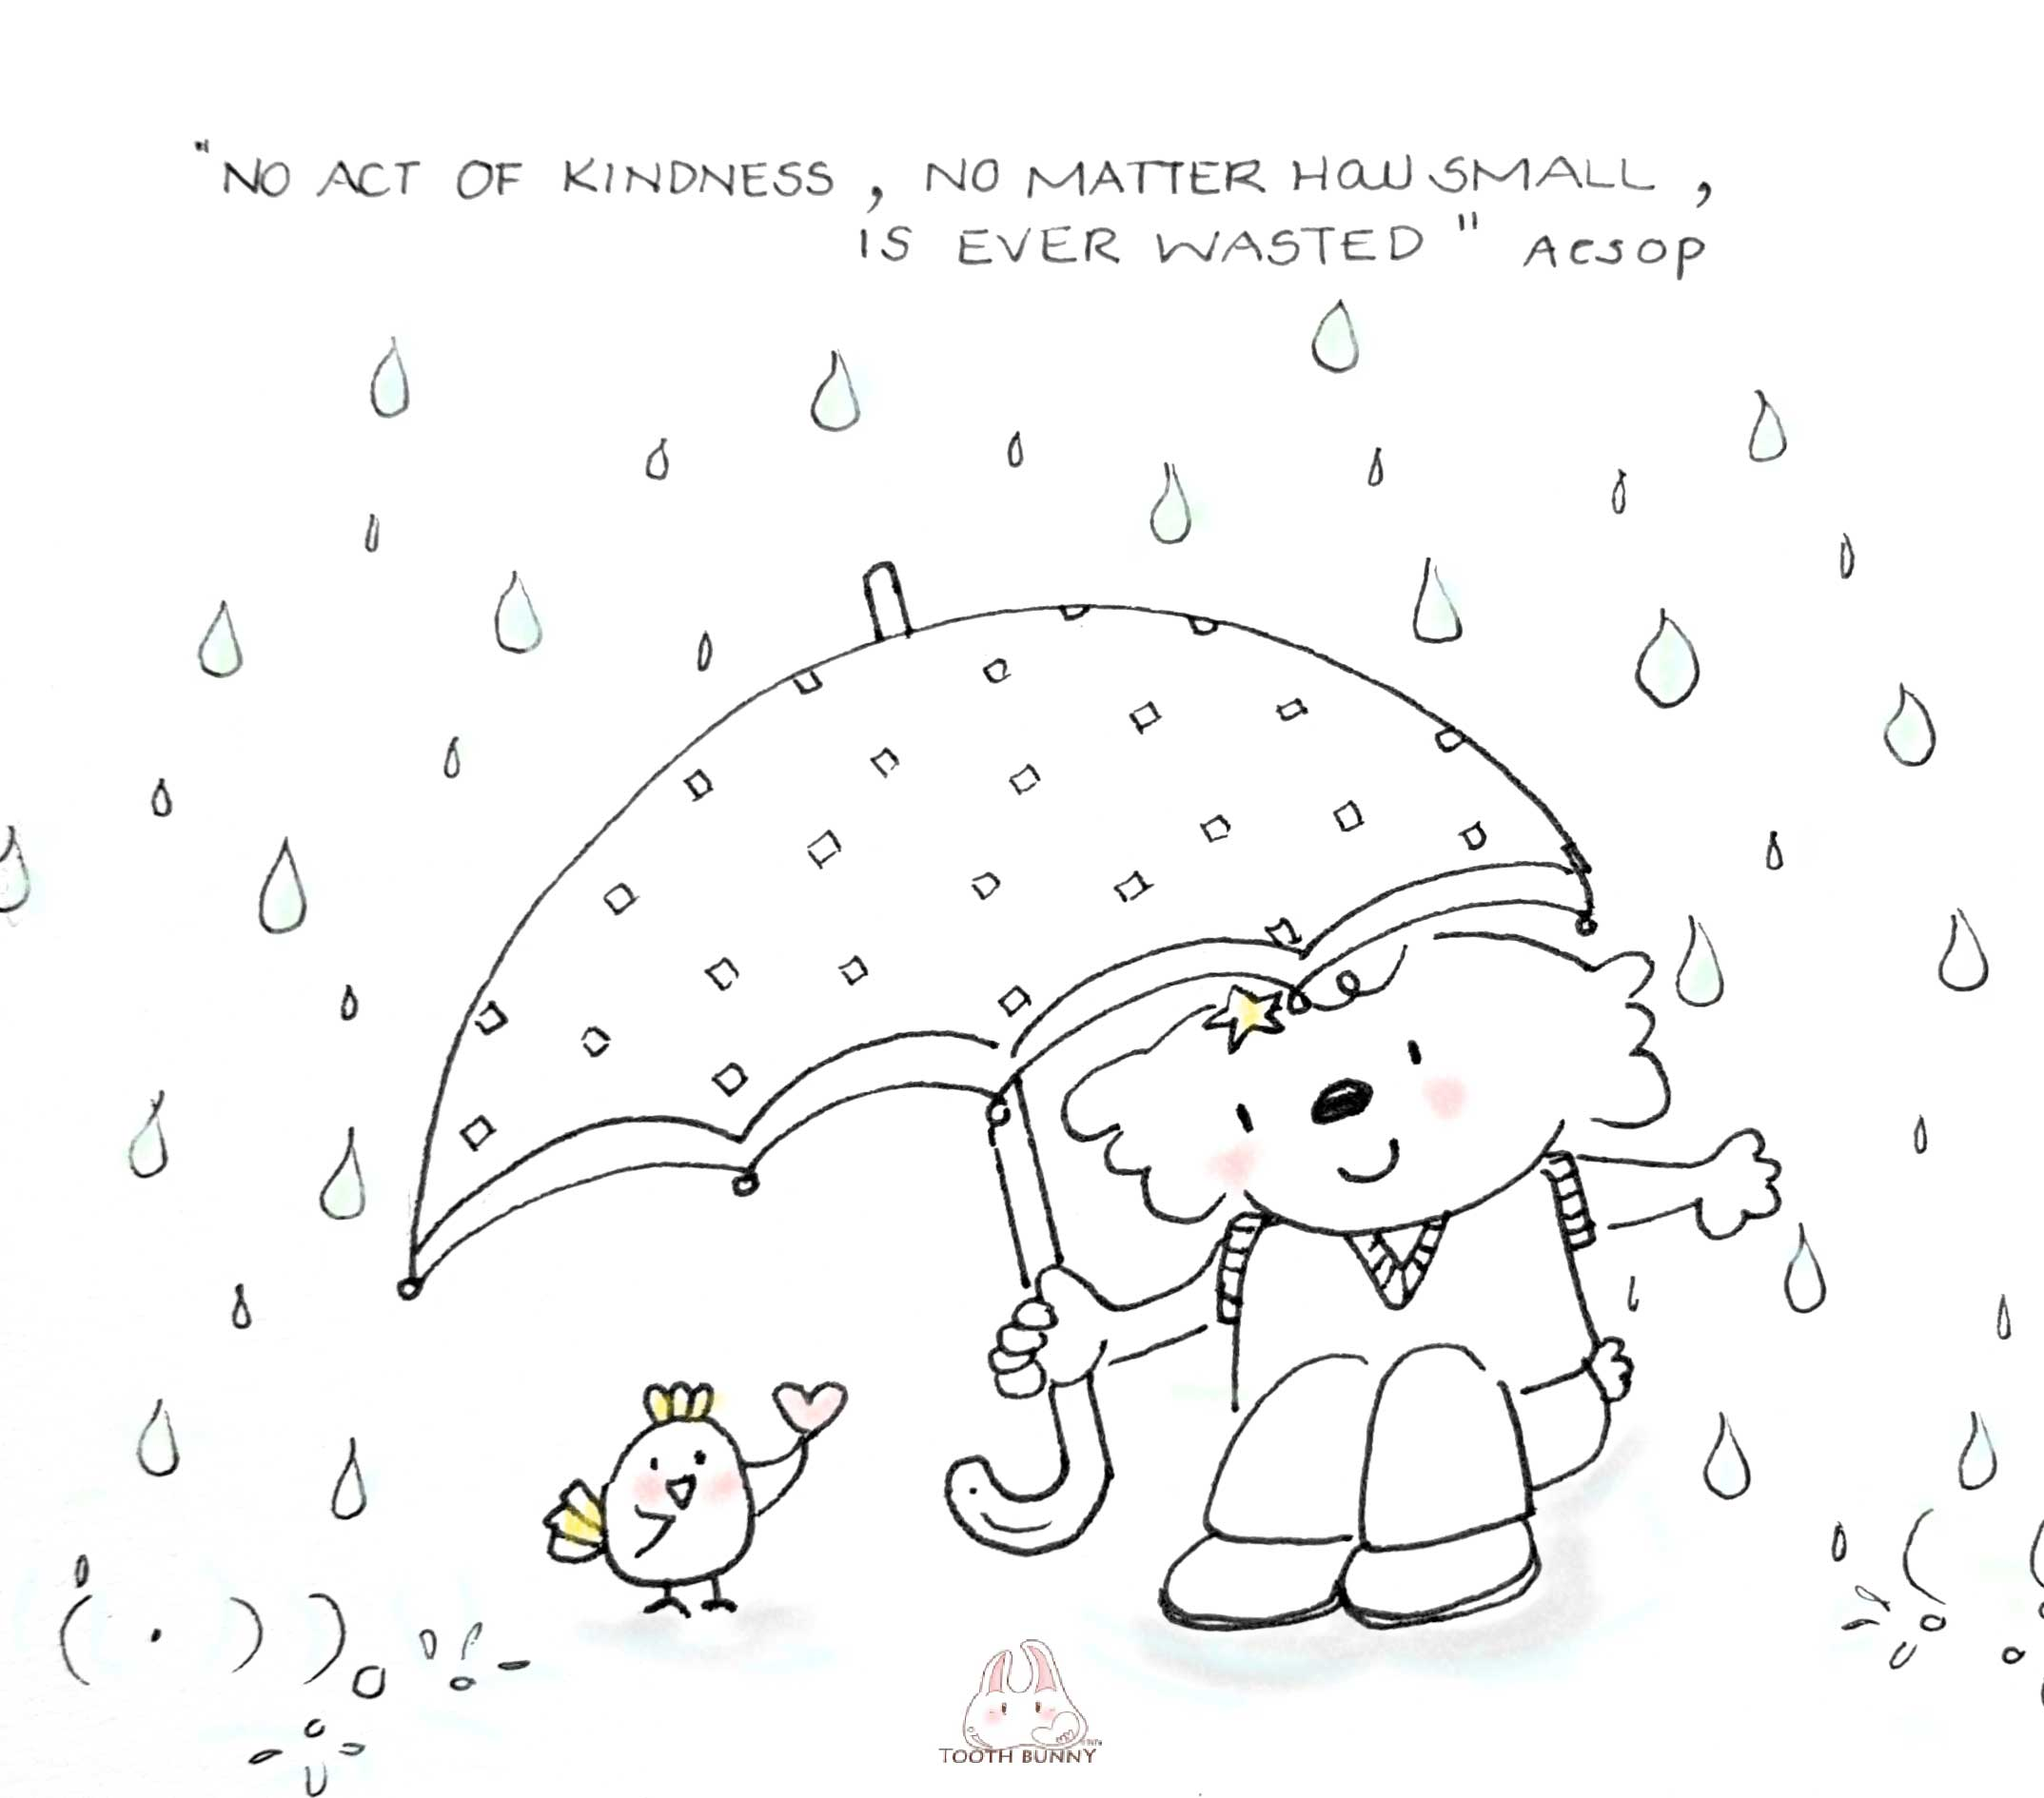 """Be Kind. Kindness is always in fashion. """"Acts of kindness, no matter how small, are never forgotten"""" AESOP  #toothbunny #drtata #annettatsang #kindness #motivate"""